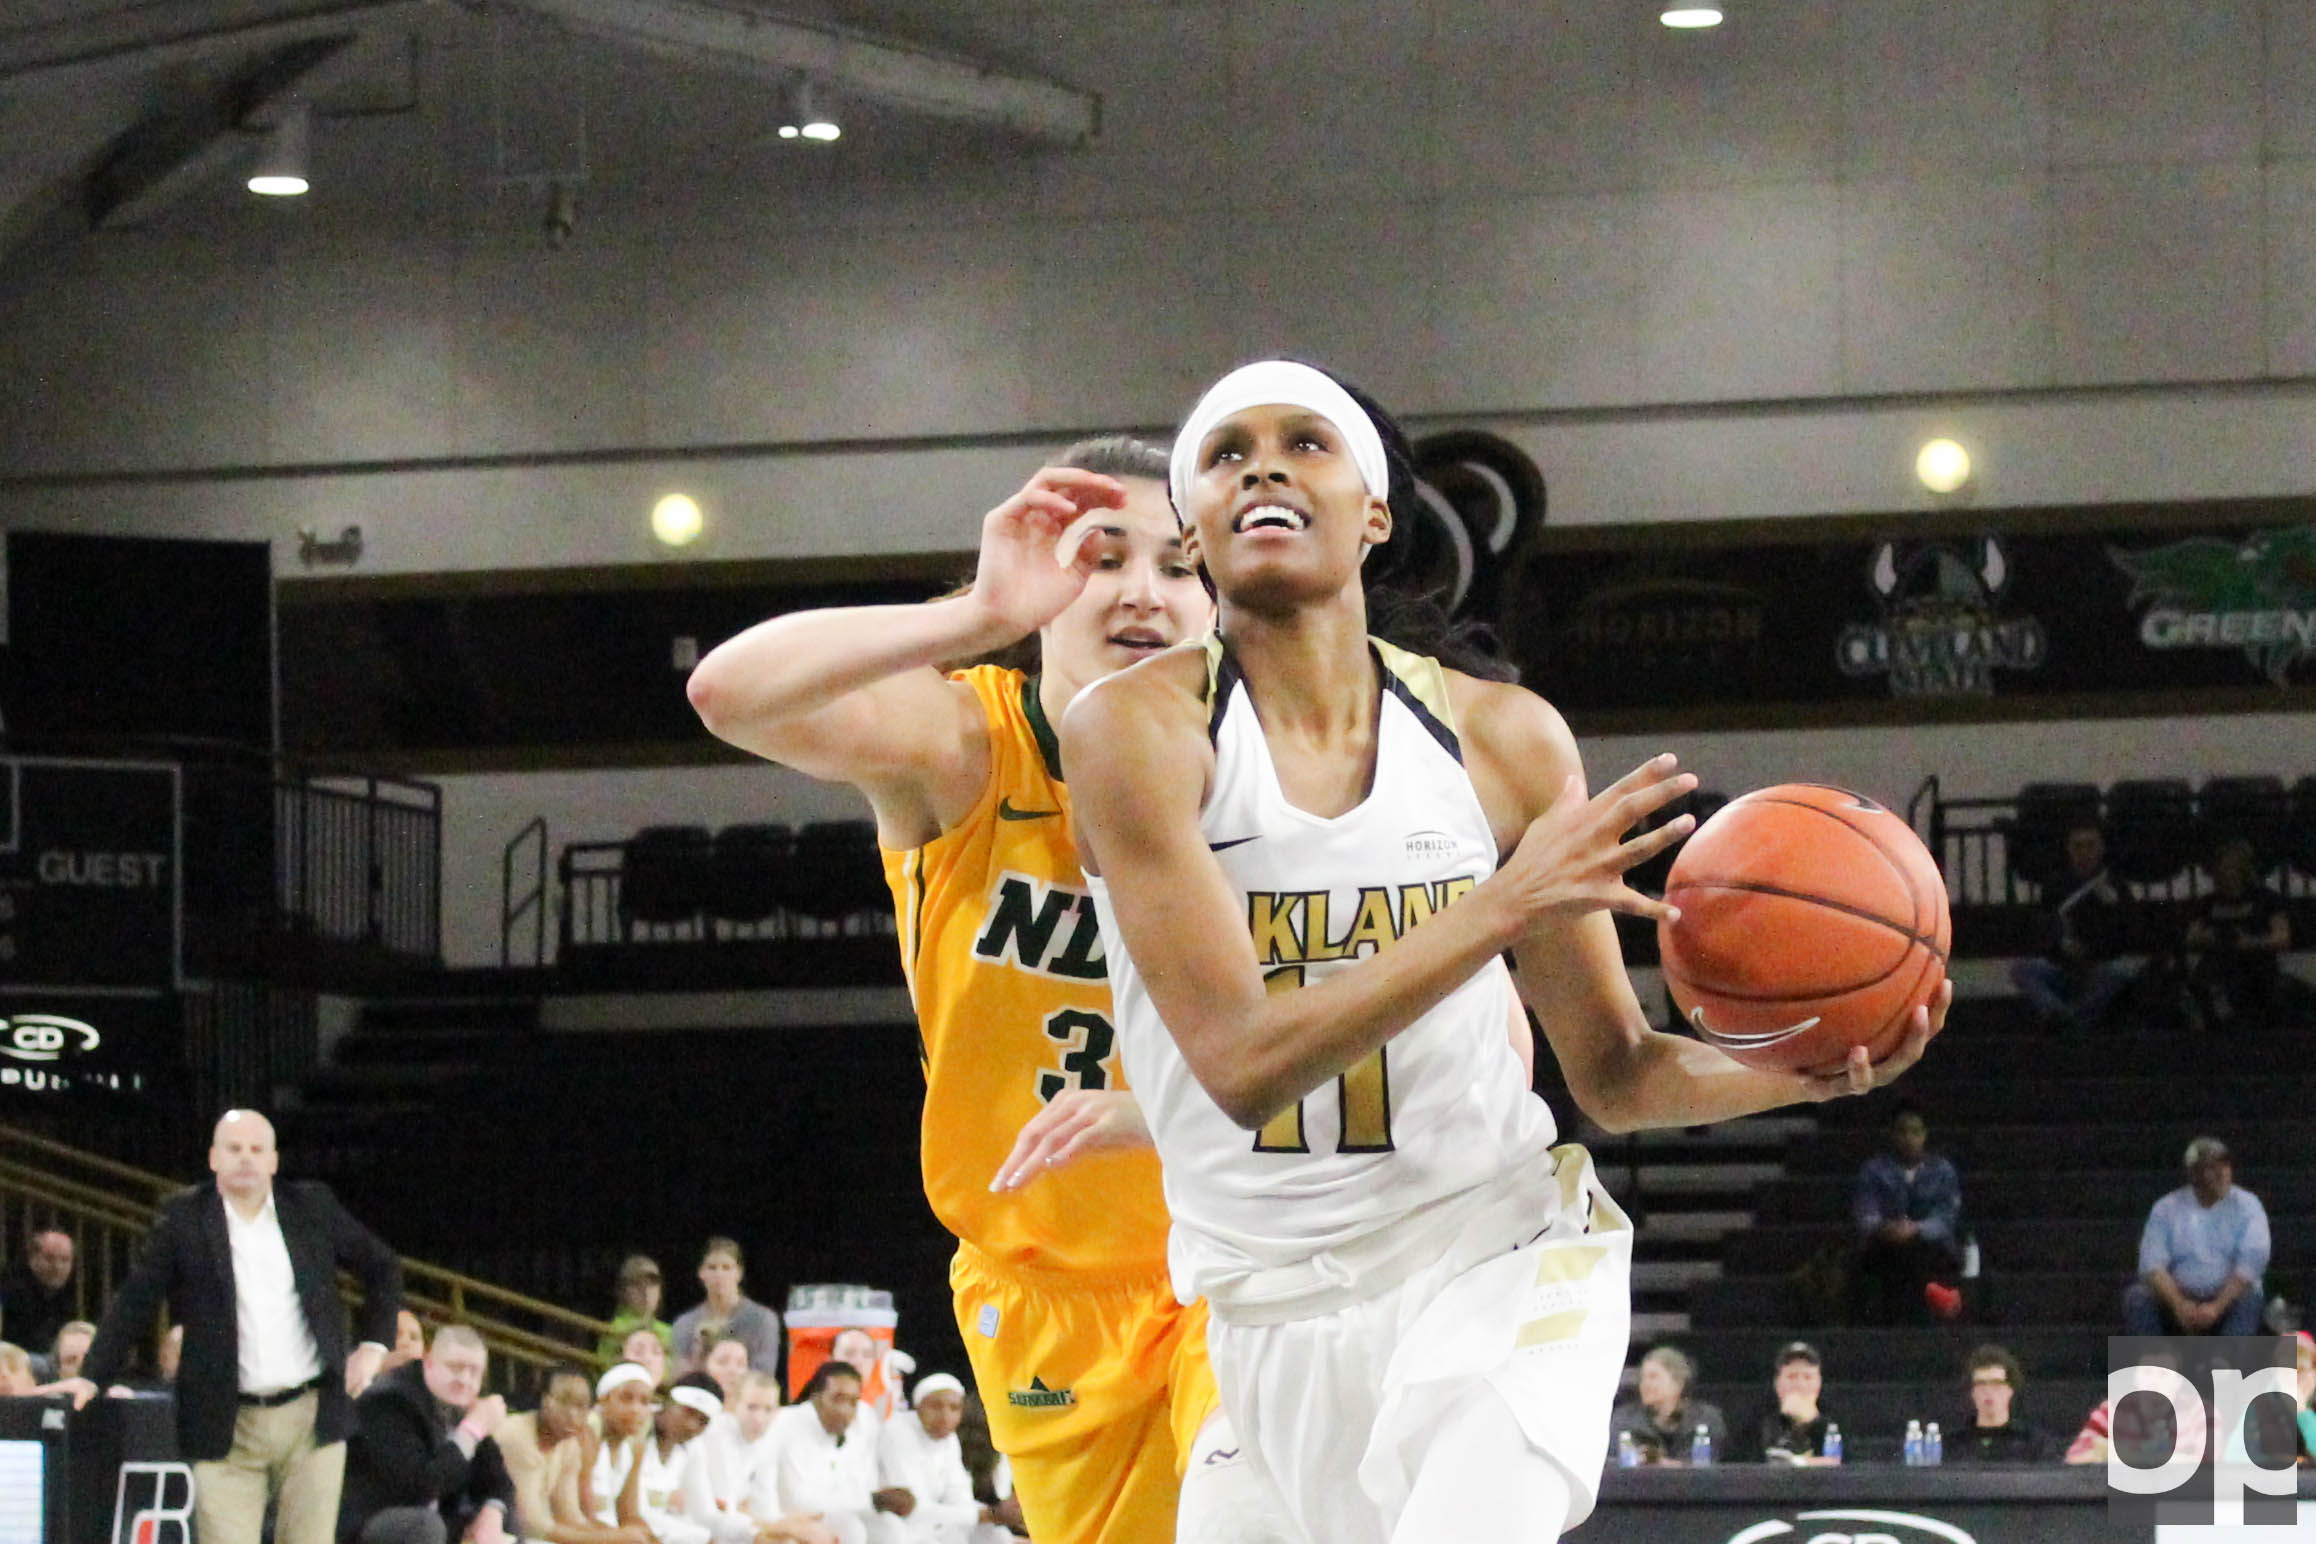 Hannah Little (18 points) followed Taylor Gleason's 22 points to lead Oakland into 95-66 win over North Dakota State University on Monday, Dec. 5 at the O'rena.